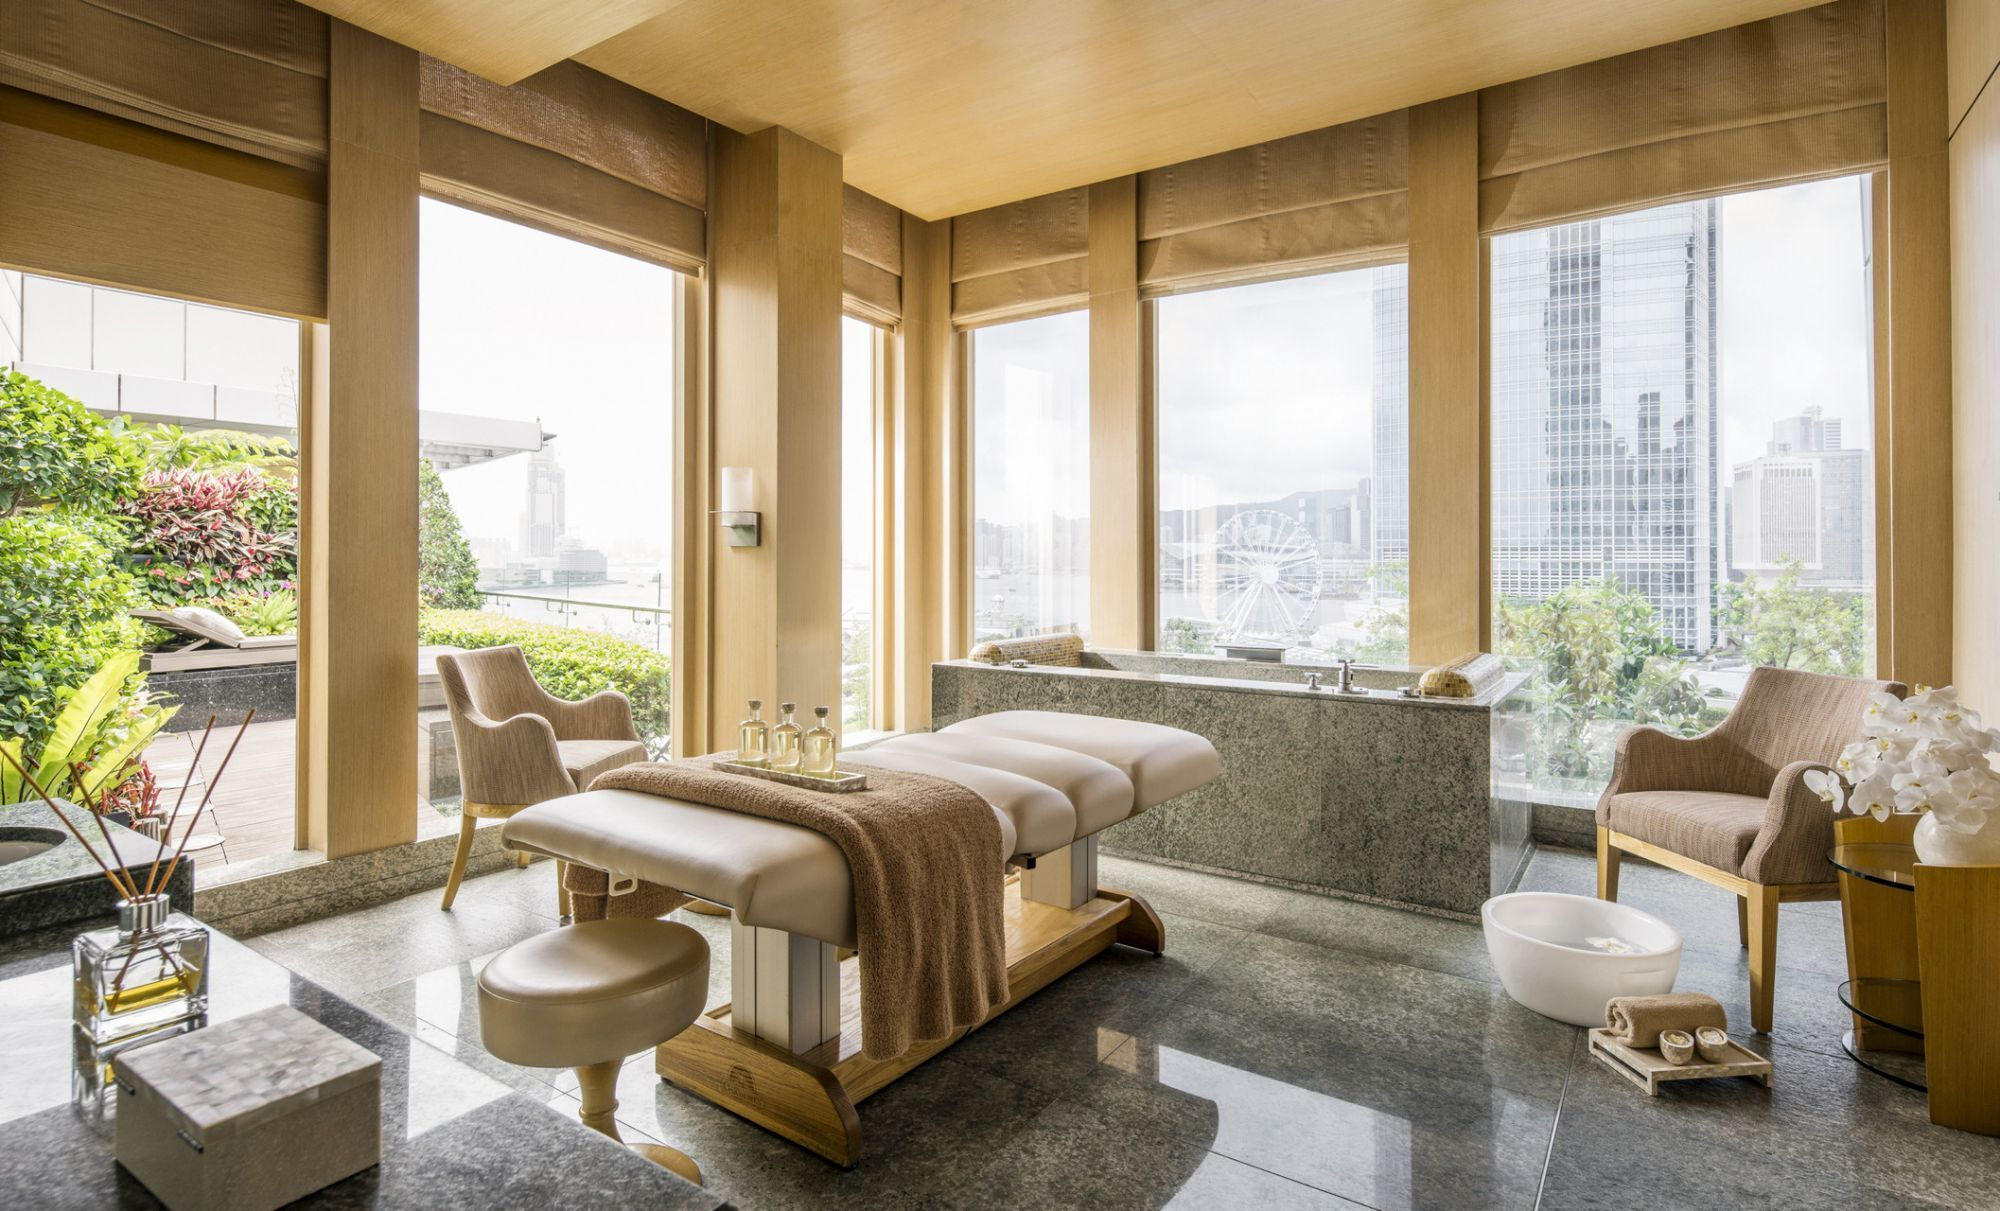 5 Luxurious Hotel Spa Treatments To Get Your Body Summer Ready